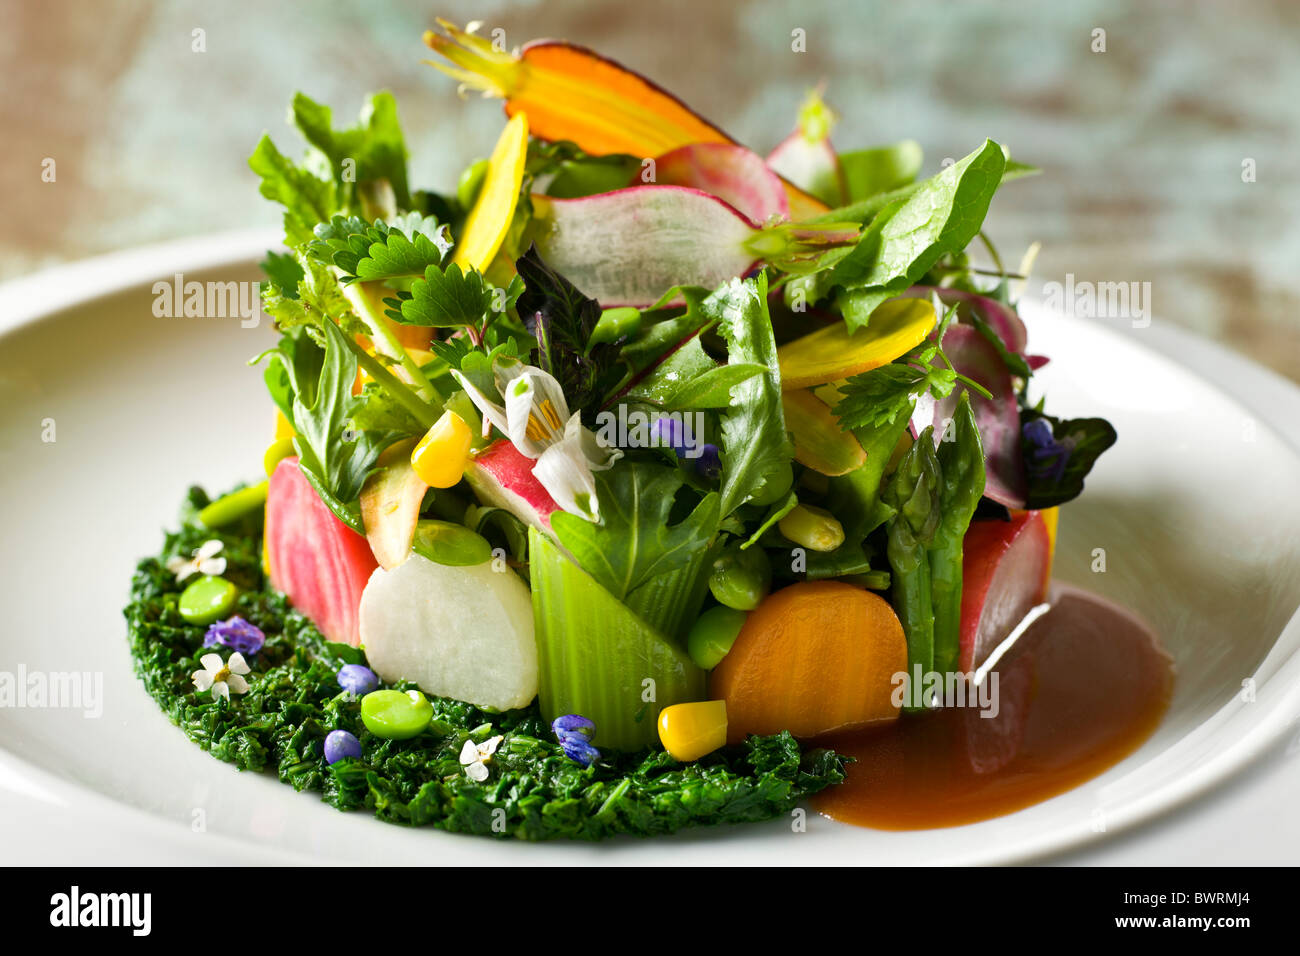 A variety of crisp and tender with crushed herbs prepared by Tony Esnault, Executive Chef of Adour at The St. Regis - Stock Image